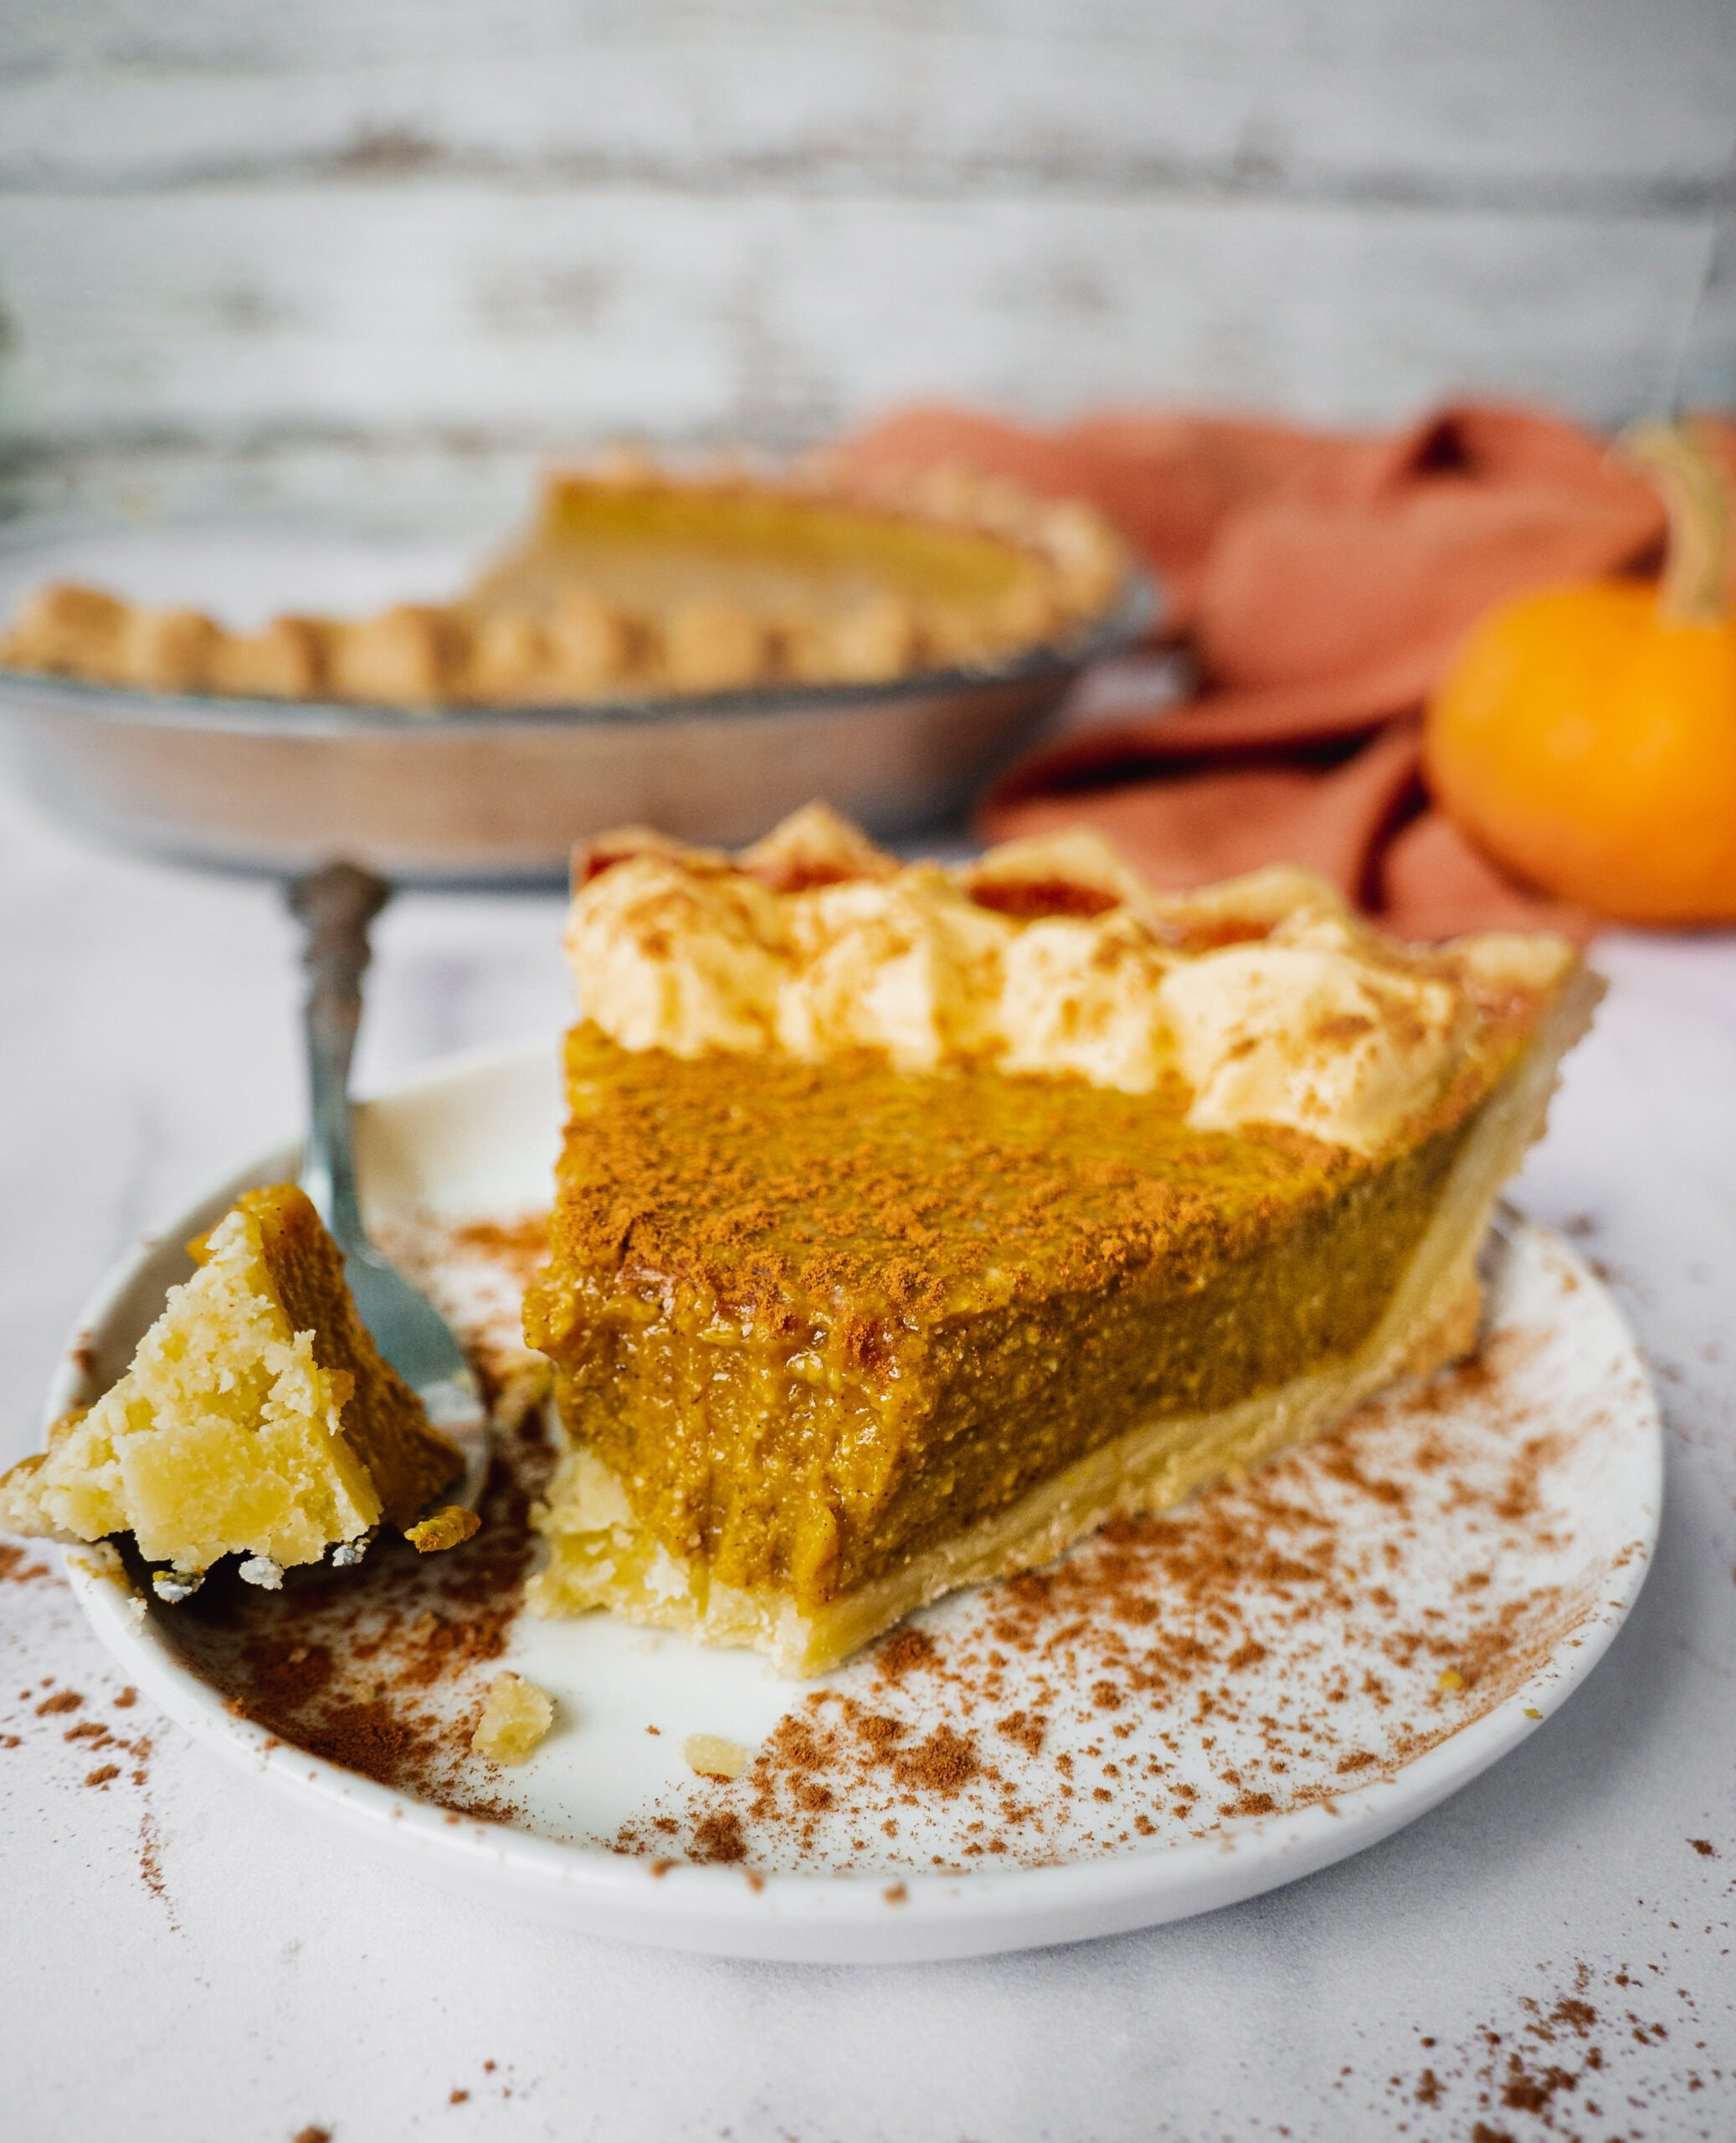 A slice of pumpkin pie on a serving plate with whipped cream on top and pumpkin spice. There is the rest of the pie in the background.